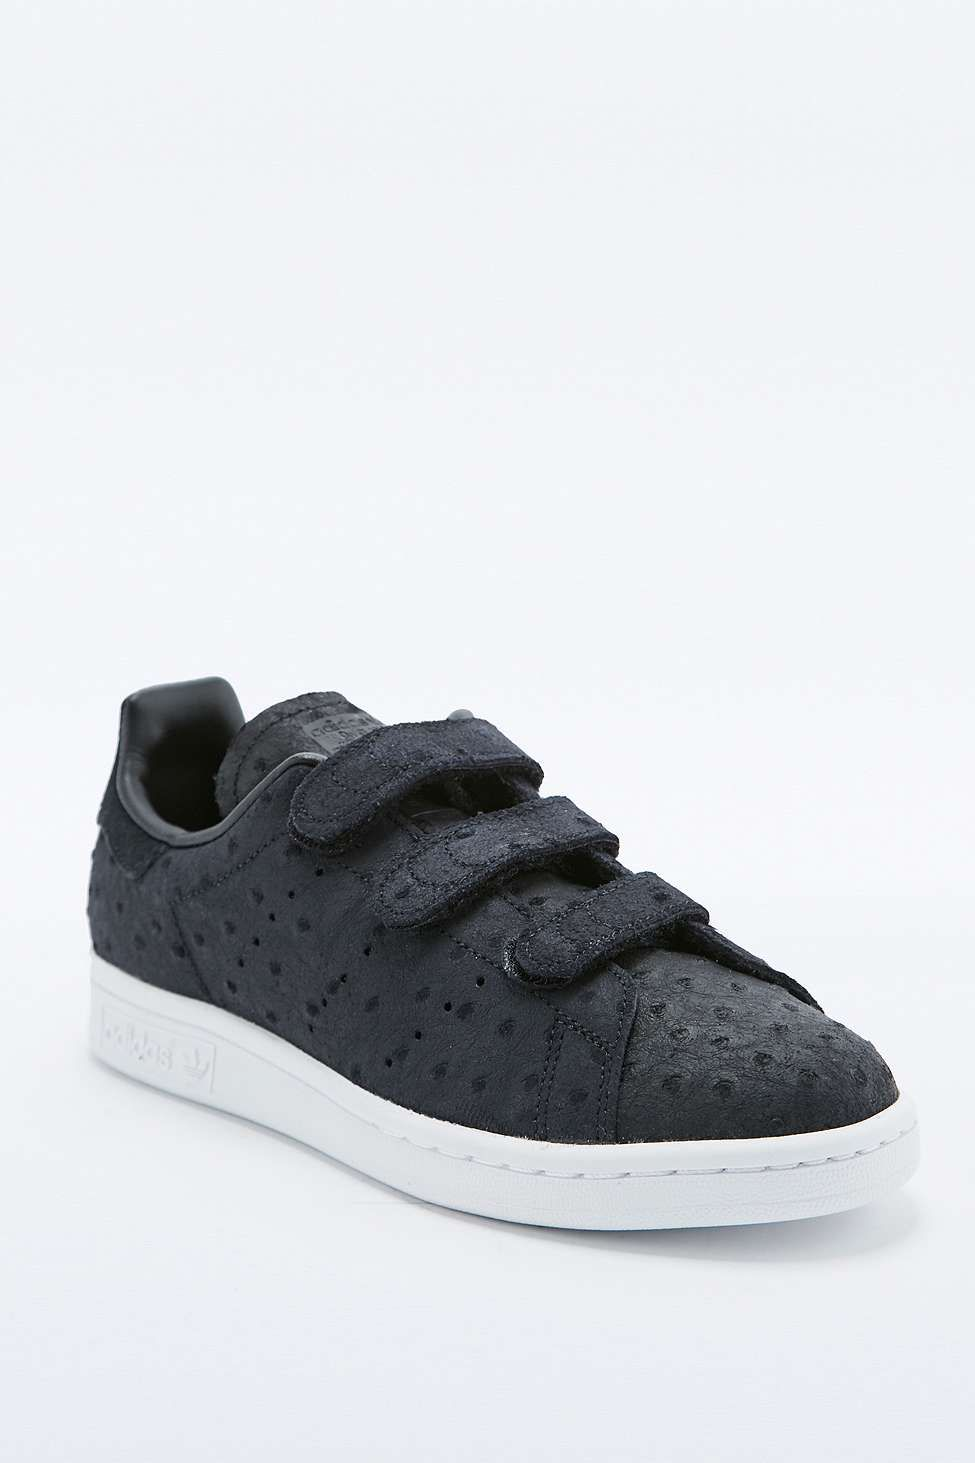 adidas Originals Stan Smith Black Velcro Trainers | Stan ...